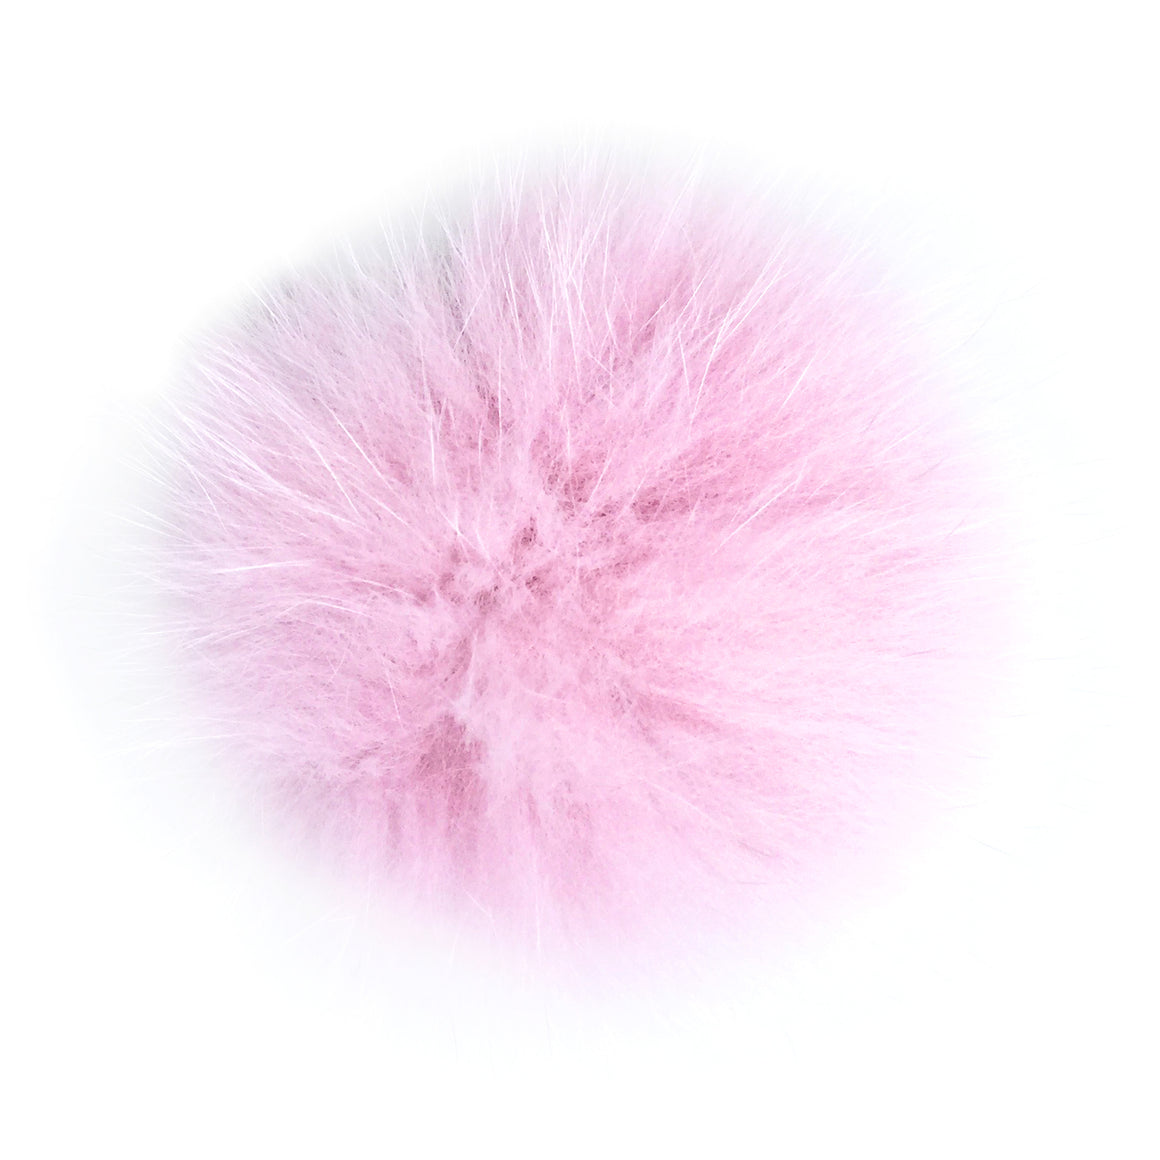 *NEWLY RESTOCKED* Dreams Pom Pom Hat | *NEW* Moss Green Baby Alpaca | Fur Pom Pom Hat